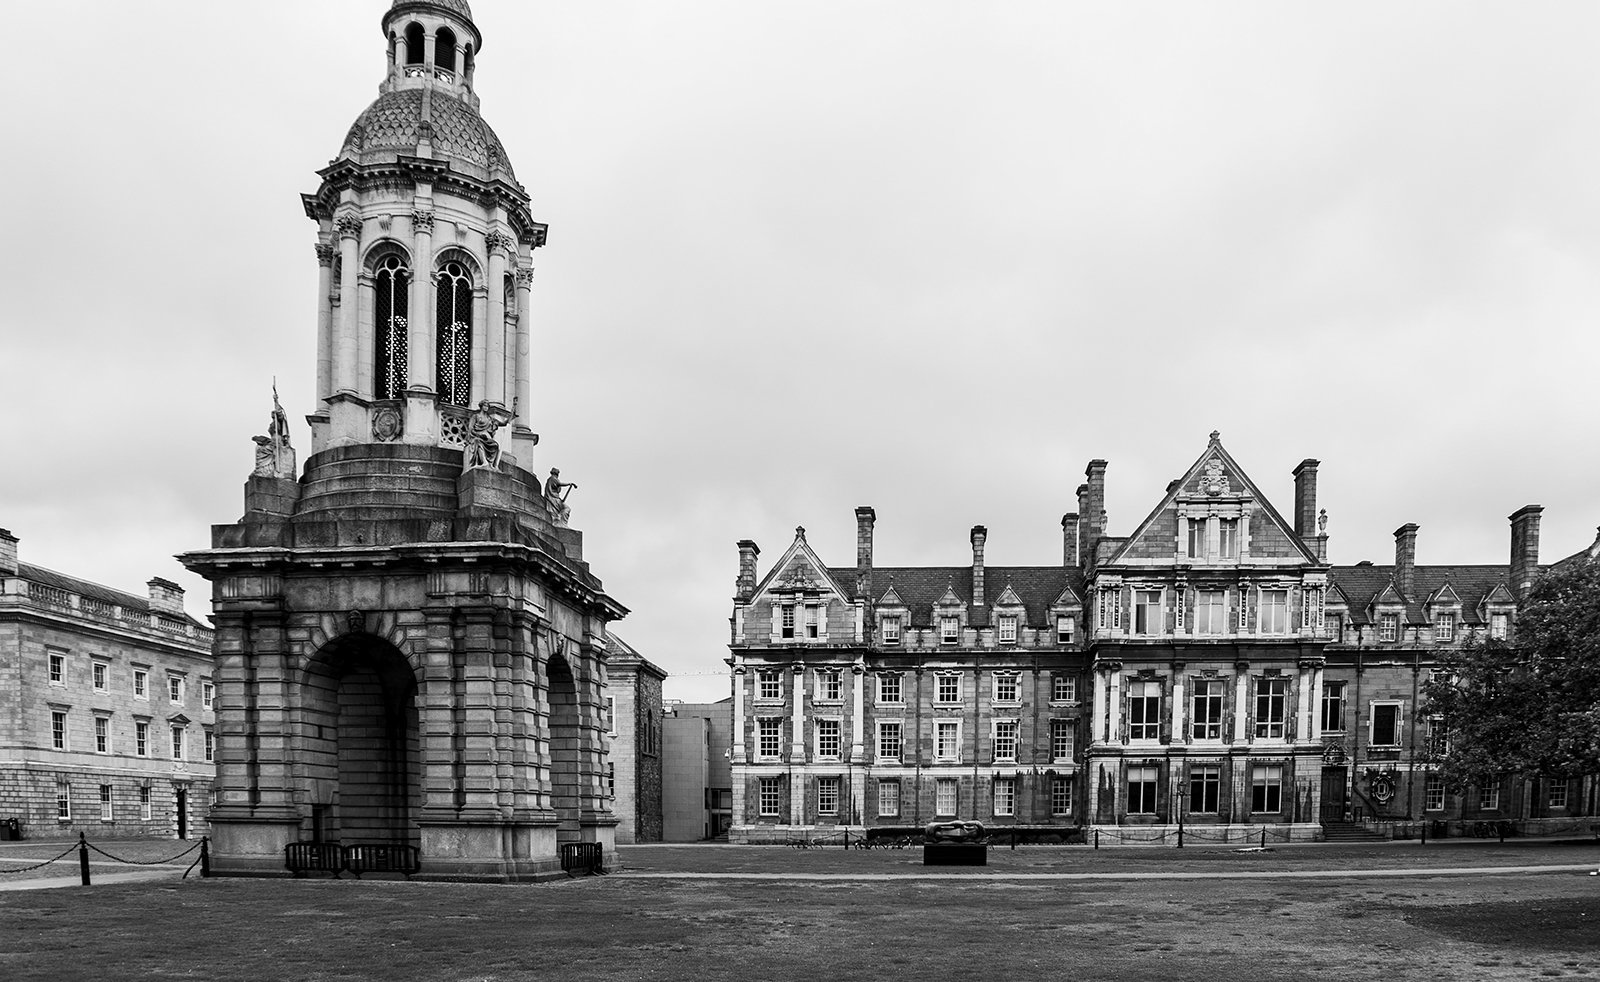 Landscape view of Trinity College campus in Dublin Ireland